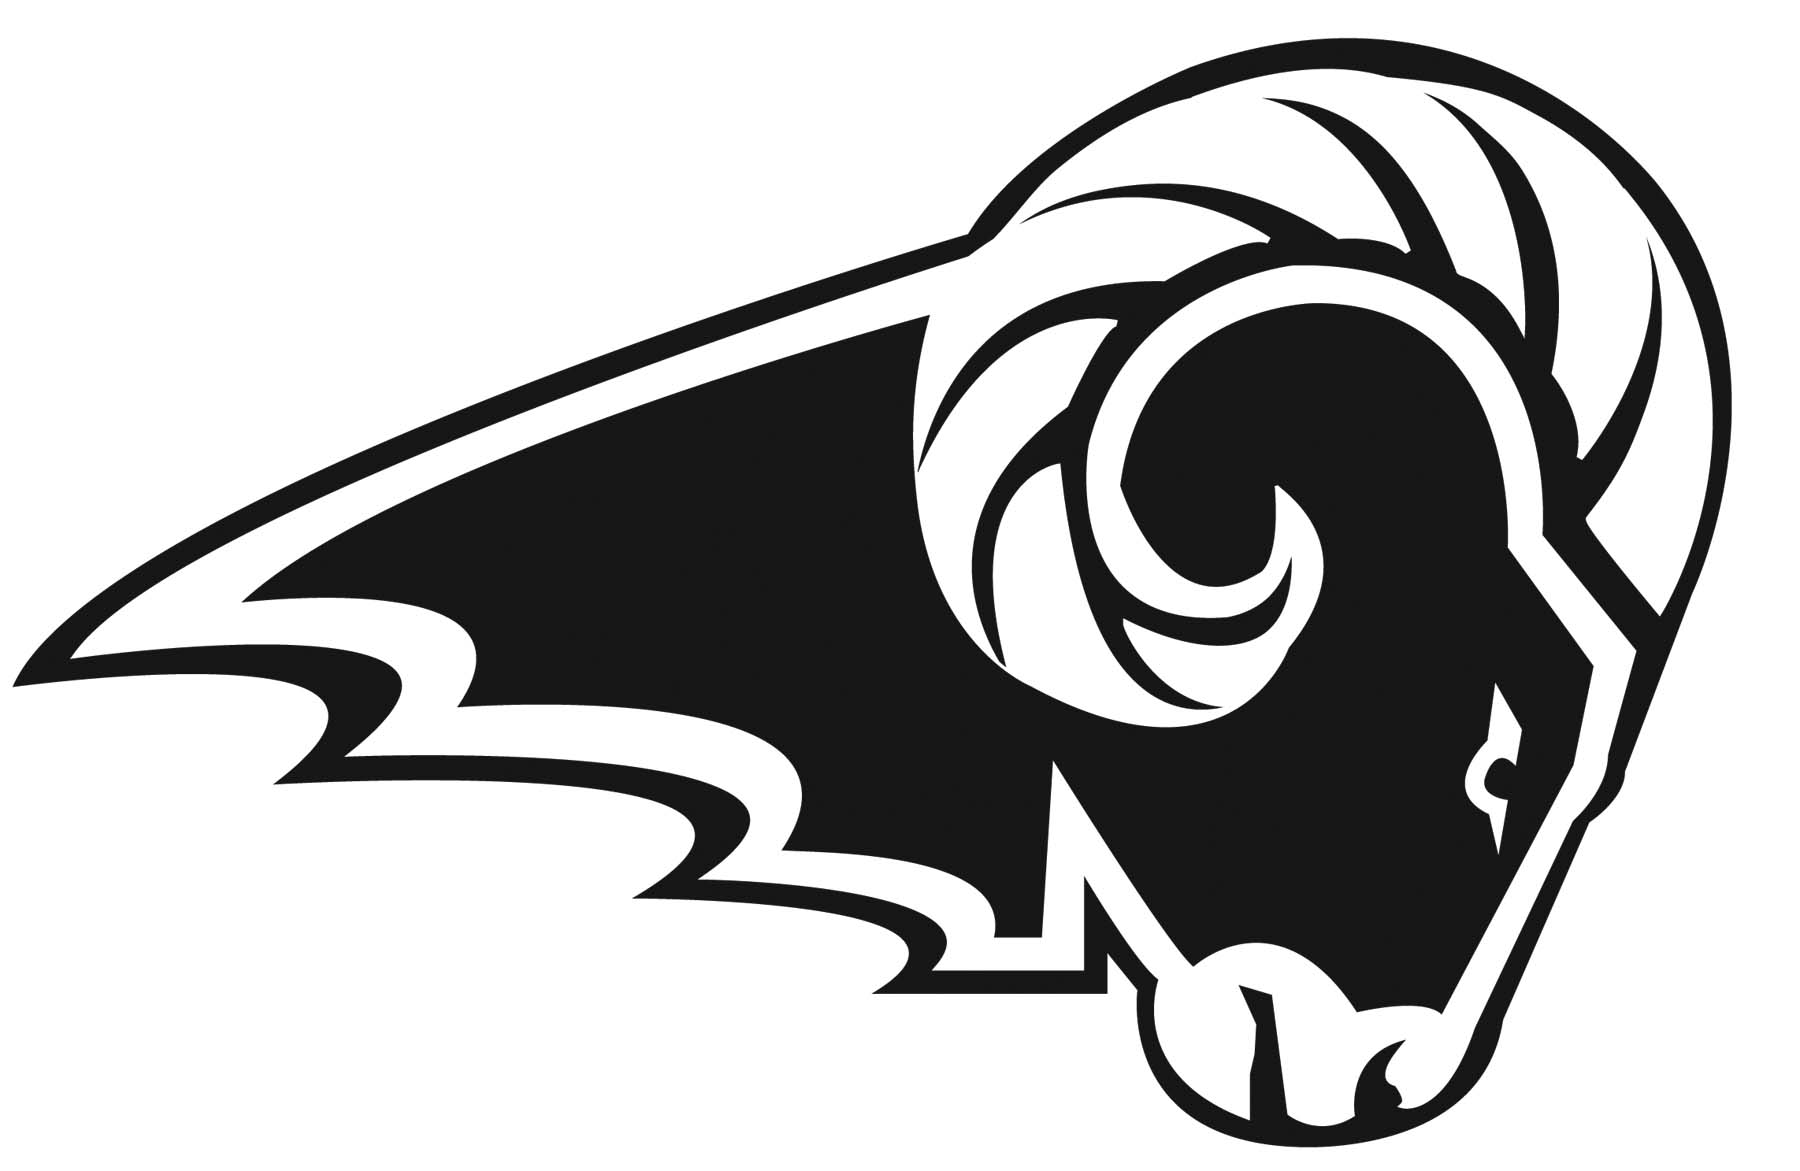 Rams logo clipart transparent Sheep Clipart Black And White | Free download best Sheep Clipart ... transparent